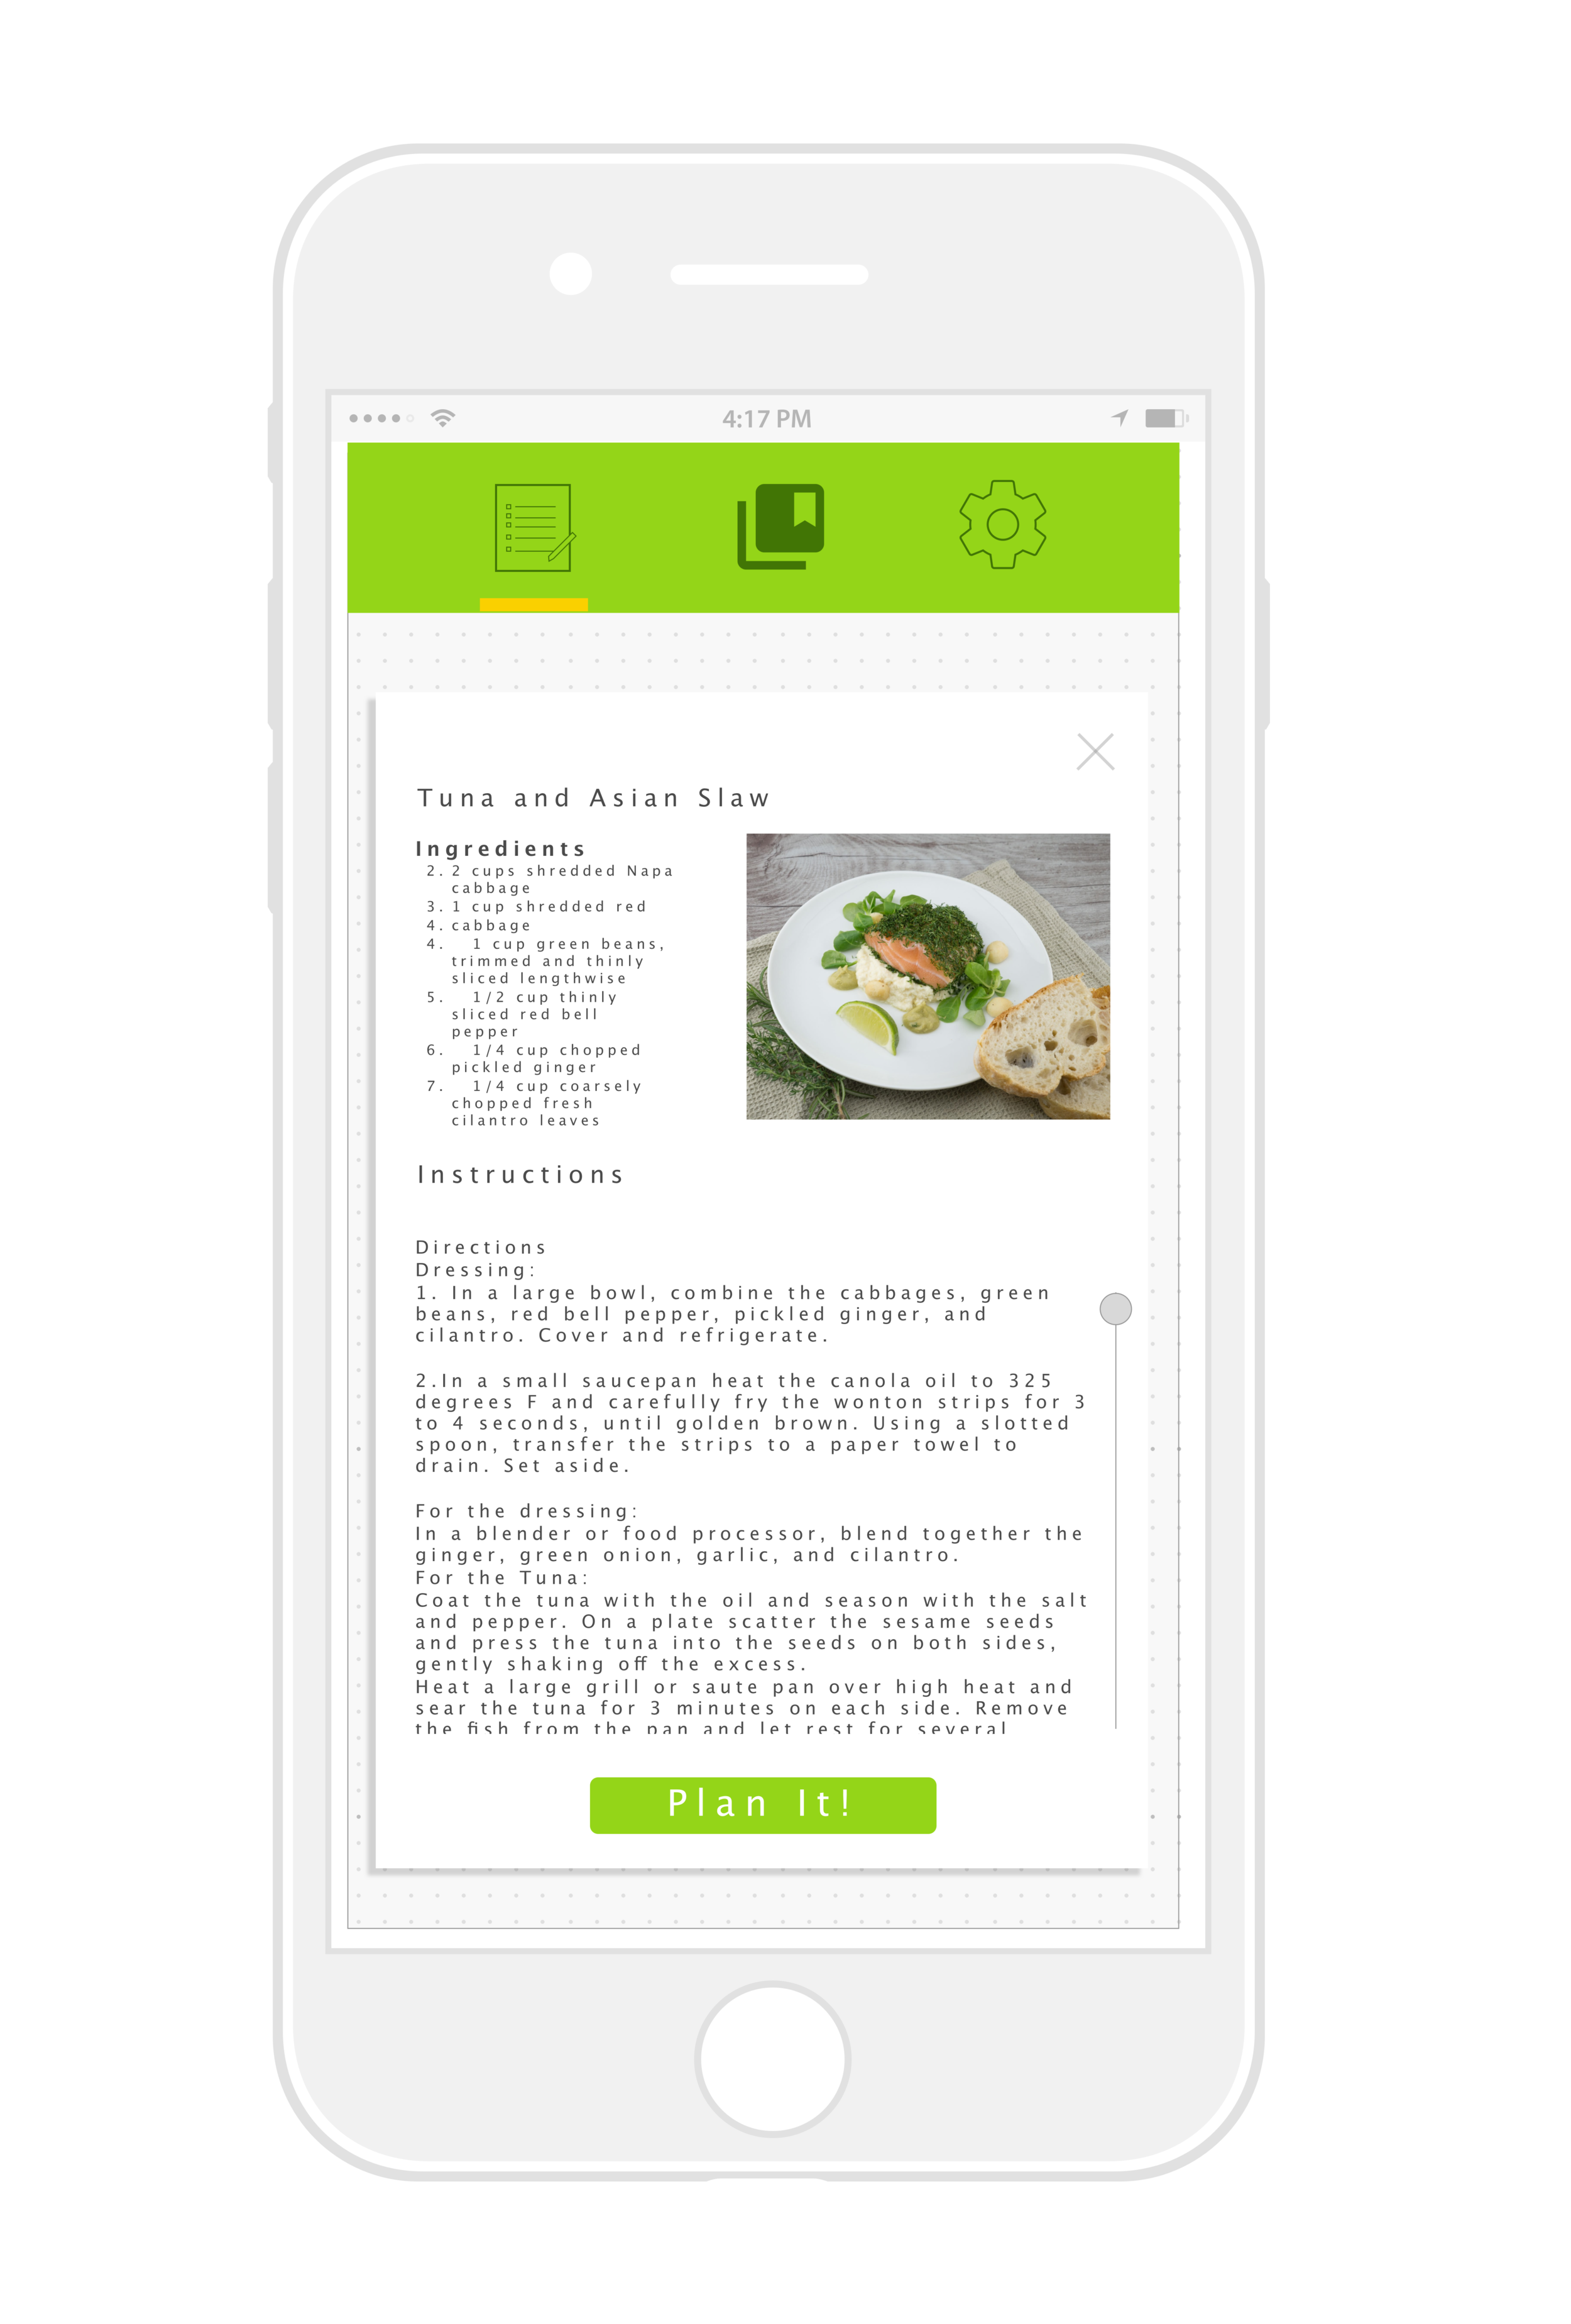 """2 The recipe card expands and flips over, revealing a recipe for that week's meal. If they press """"Plan It!""""the ingredients are exported as line items to the user's preferred list, note, or reminder app.  The """"Plan it!"""" button is replaced with two new buttons…"""